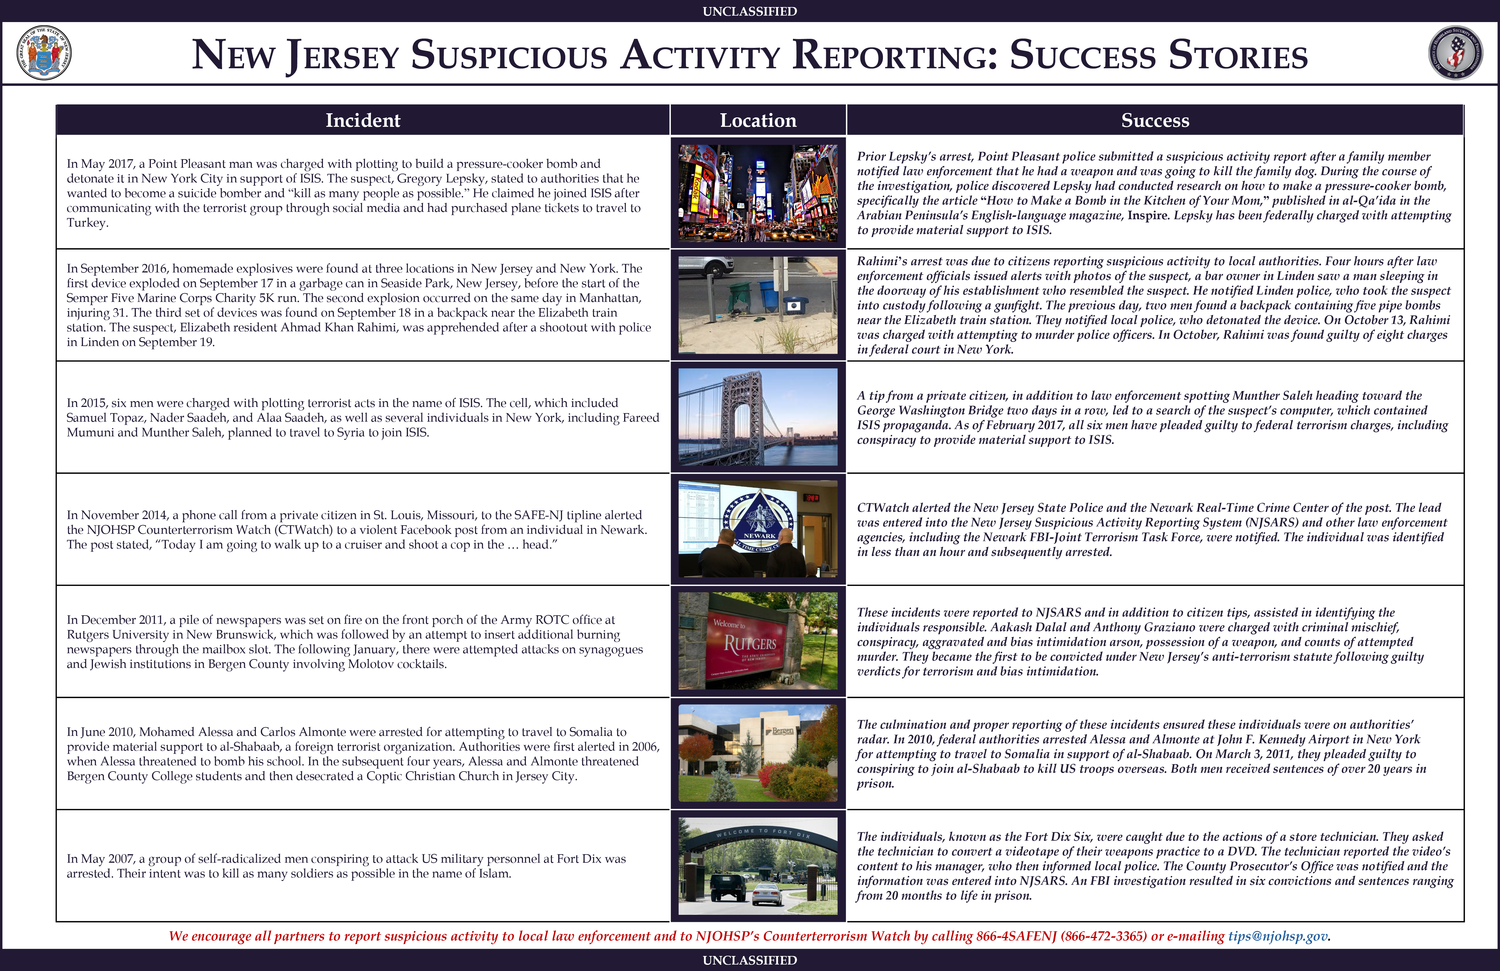 New Jersey Suspicious Activity Reporting: Success Stories